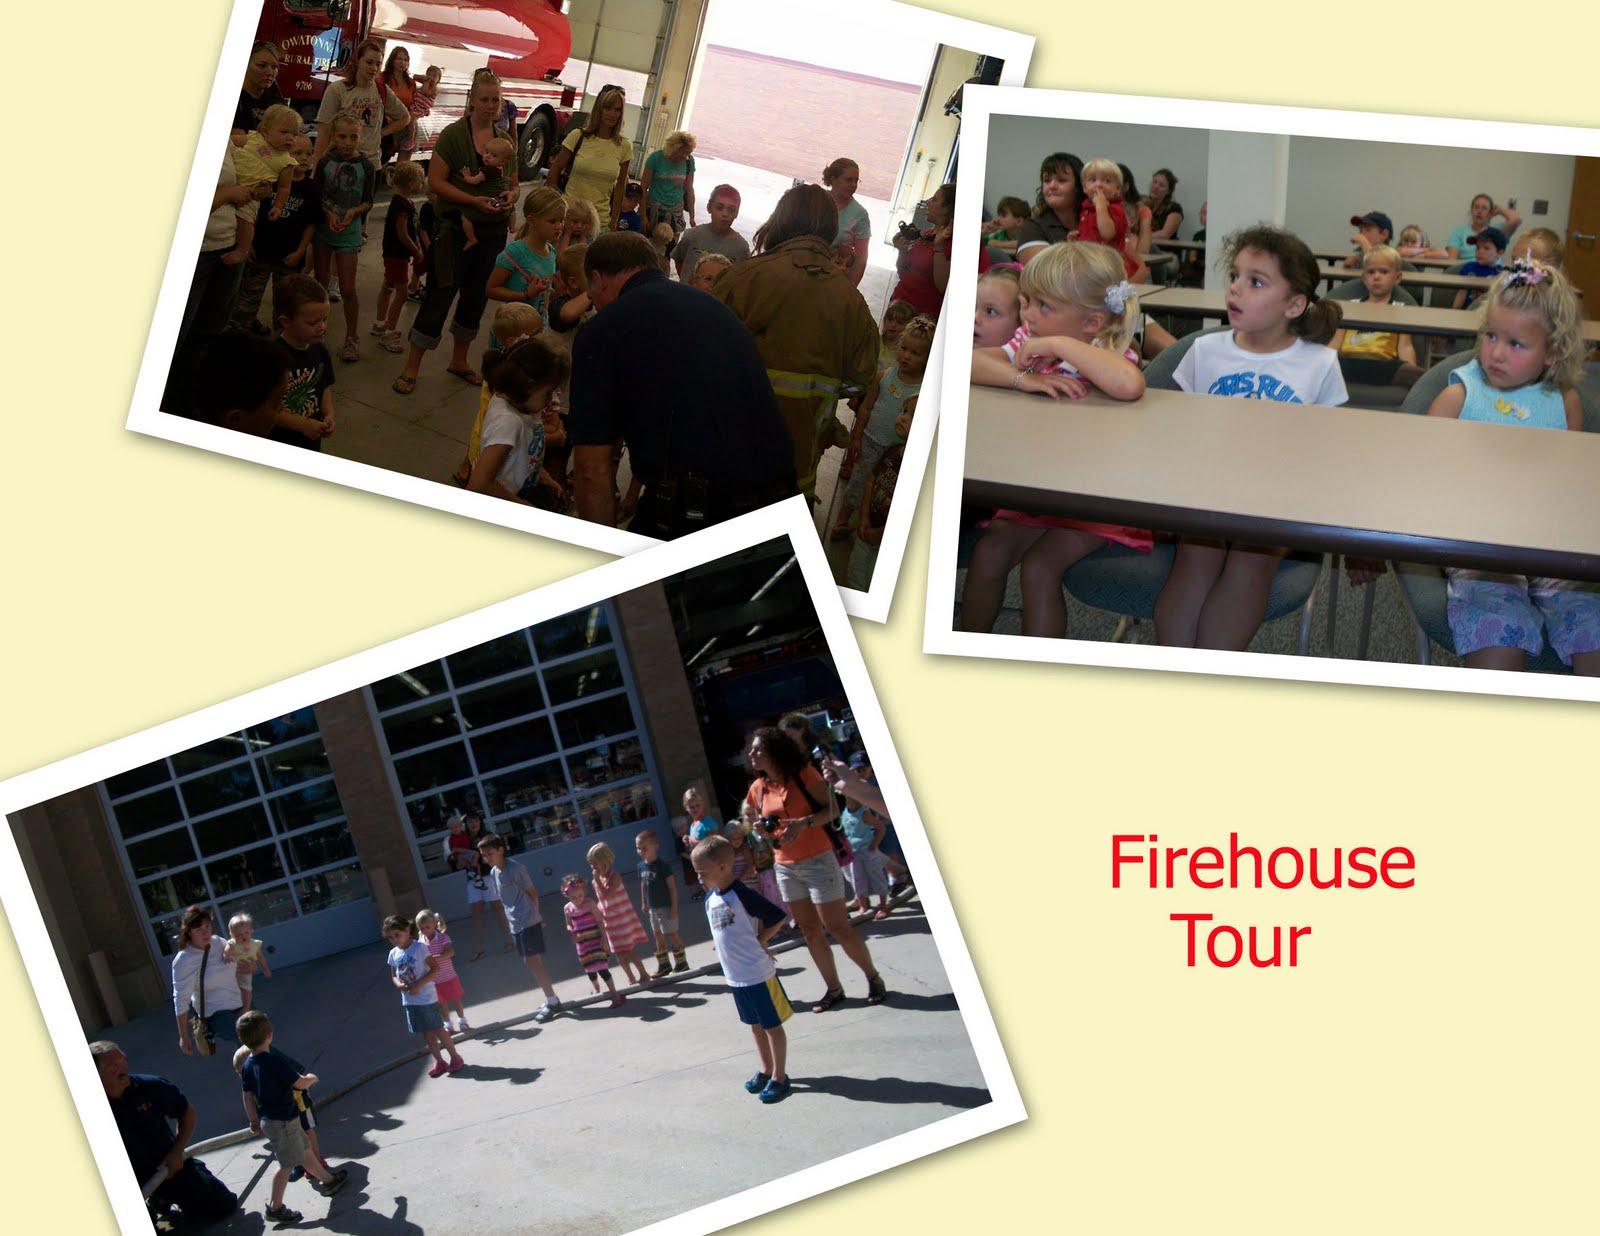 Firehouse Tour